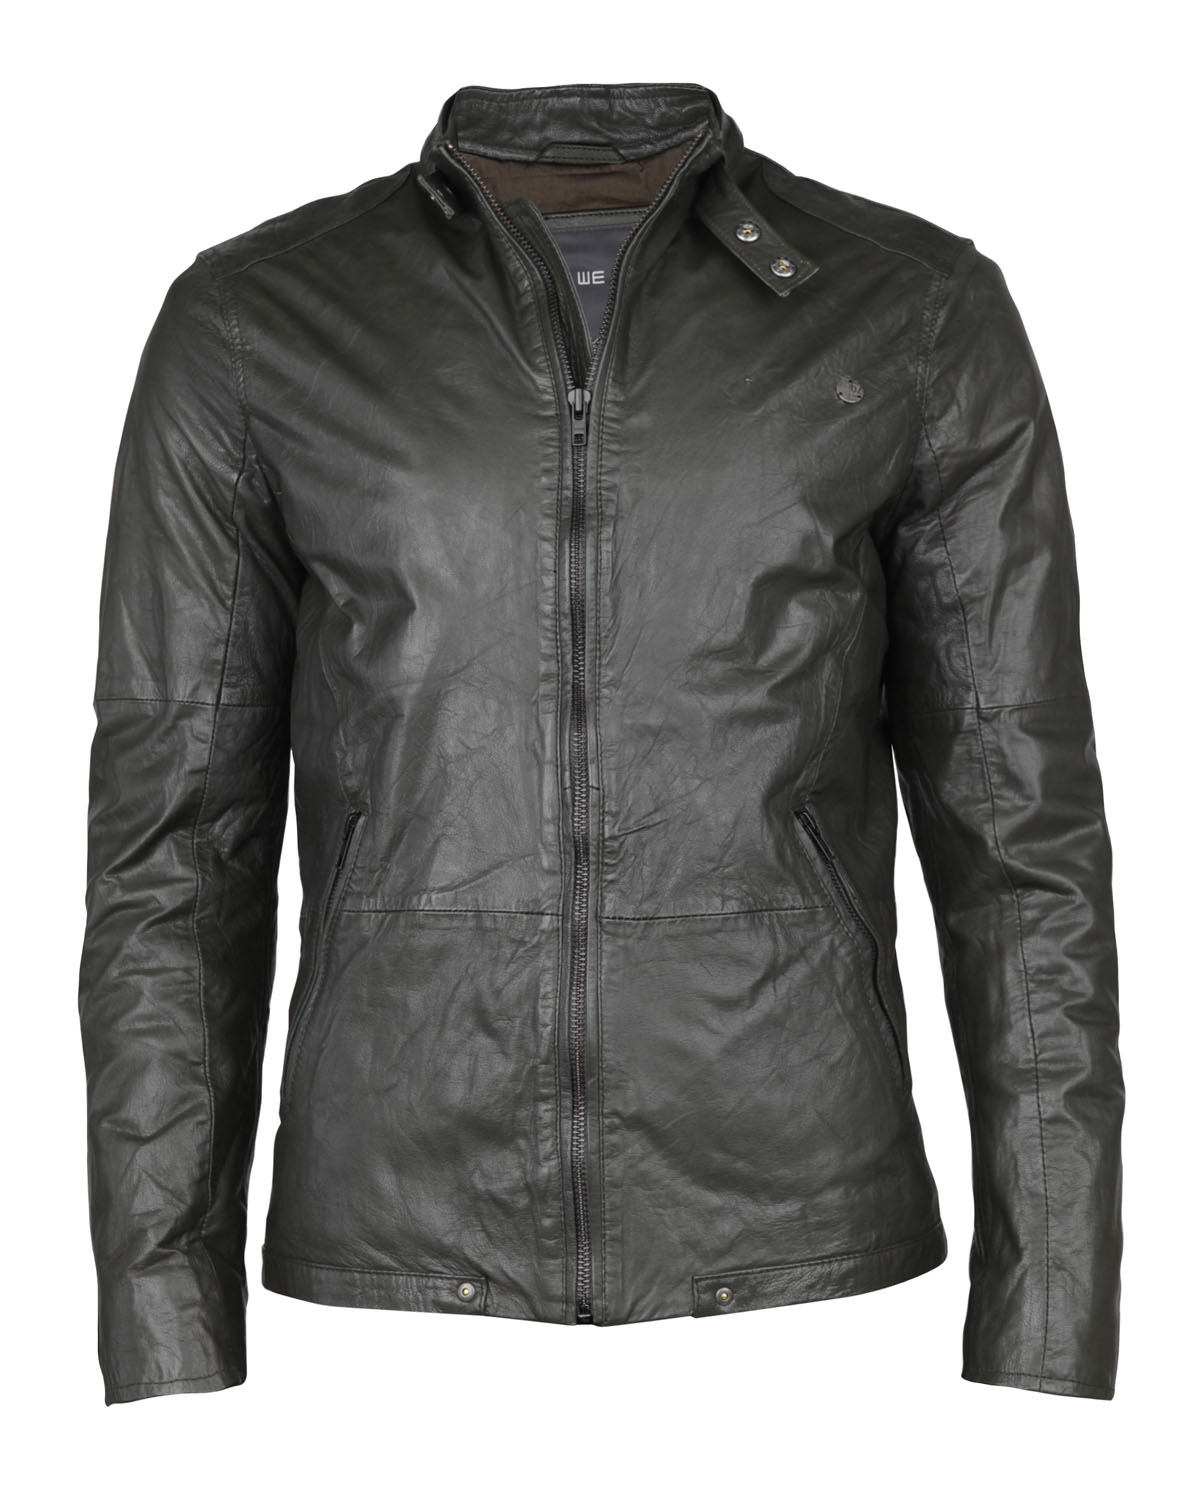 Blouson Homme 77619457 Fashion De Cuir We EwwqCpSF0